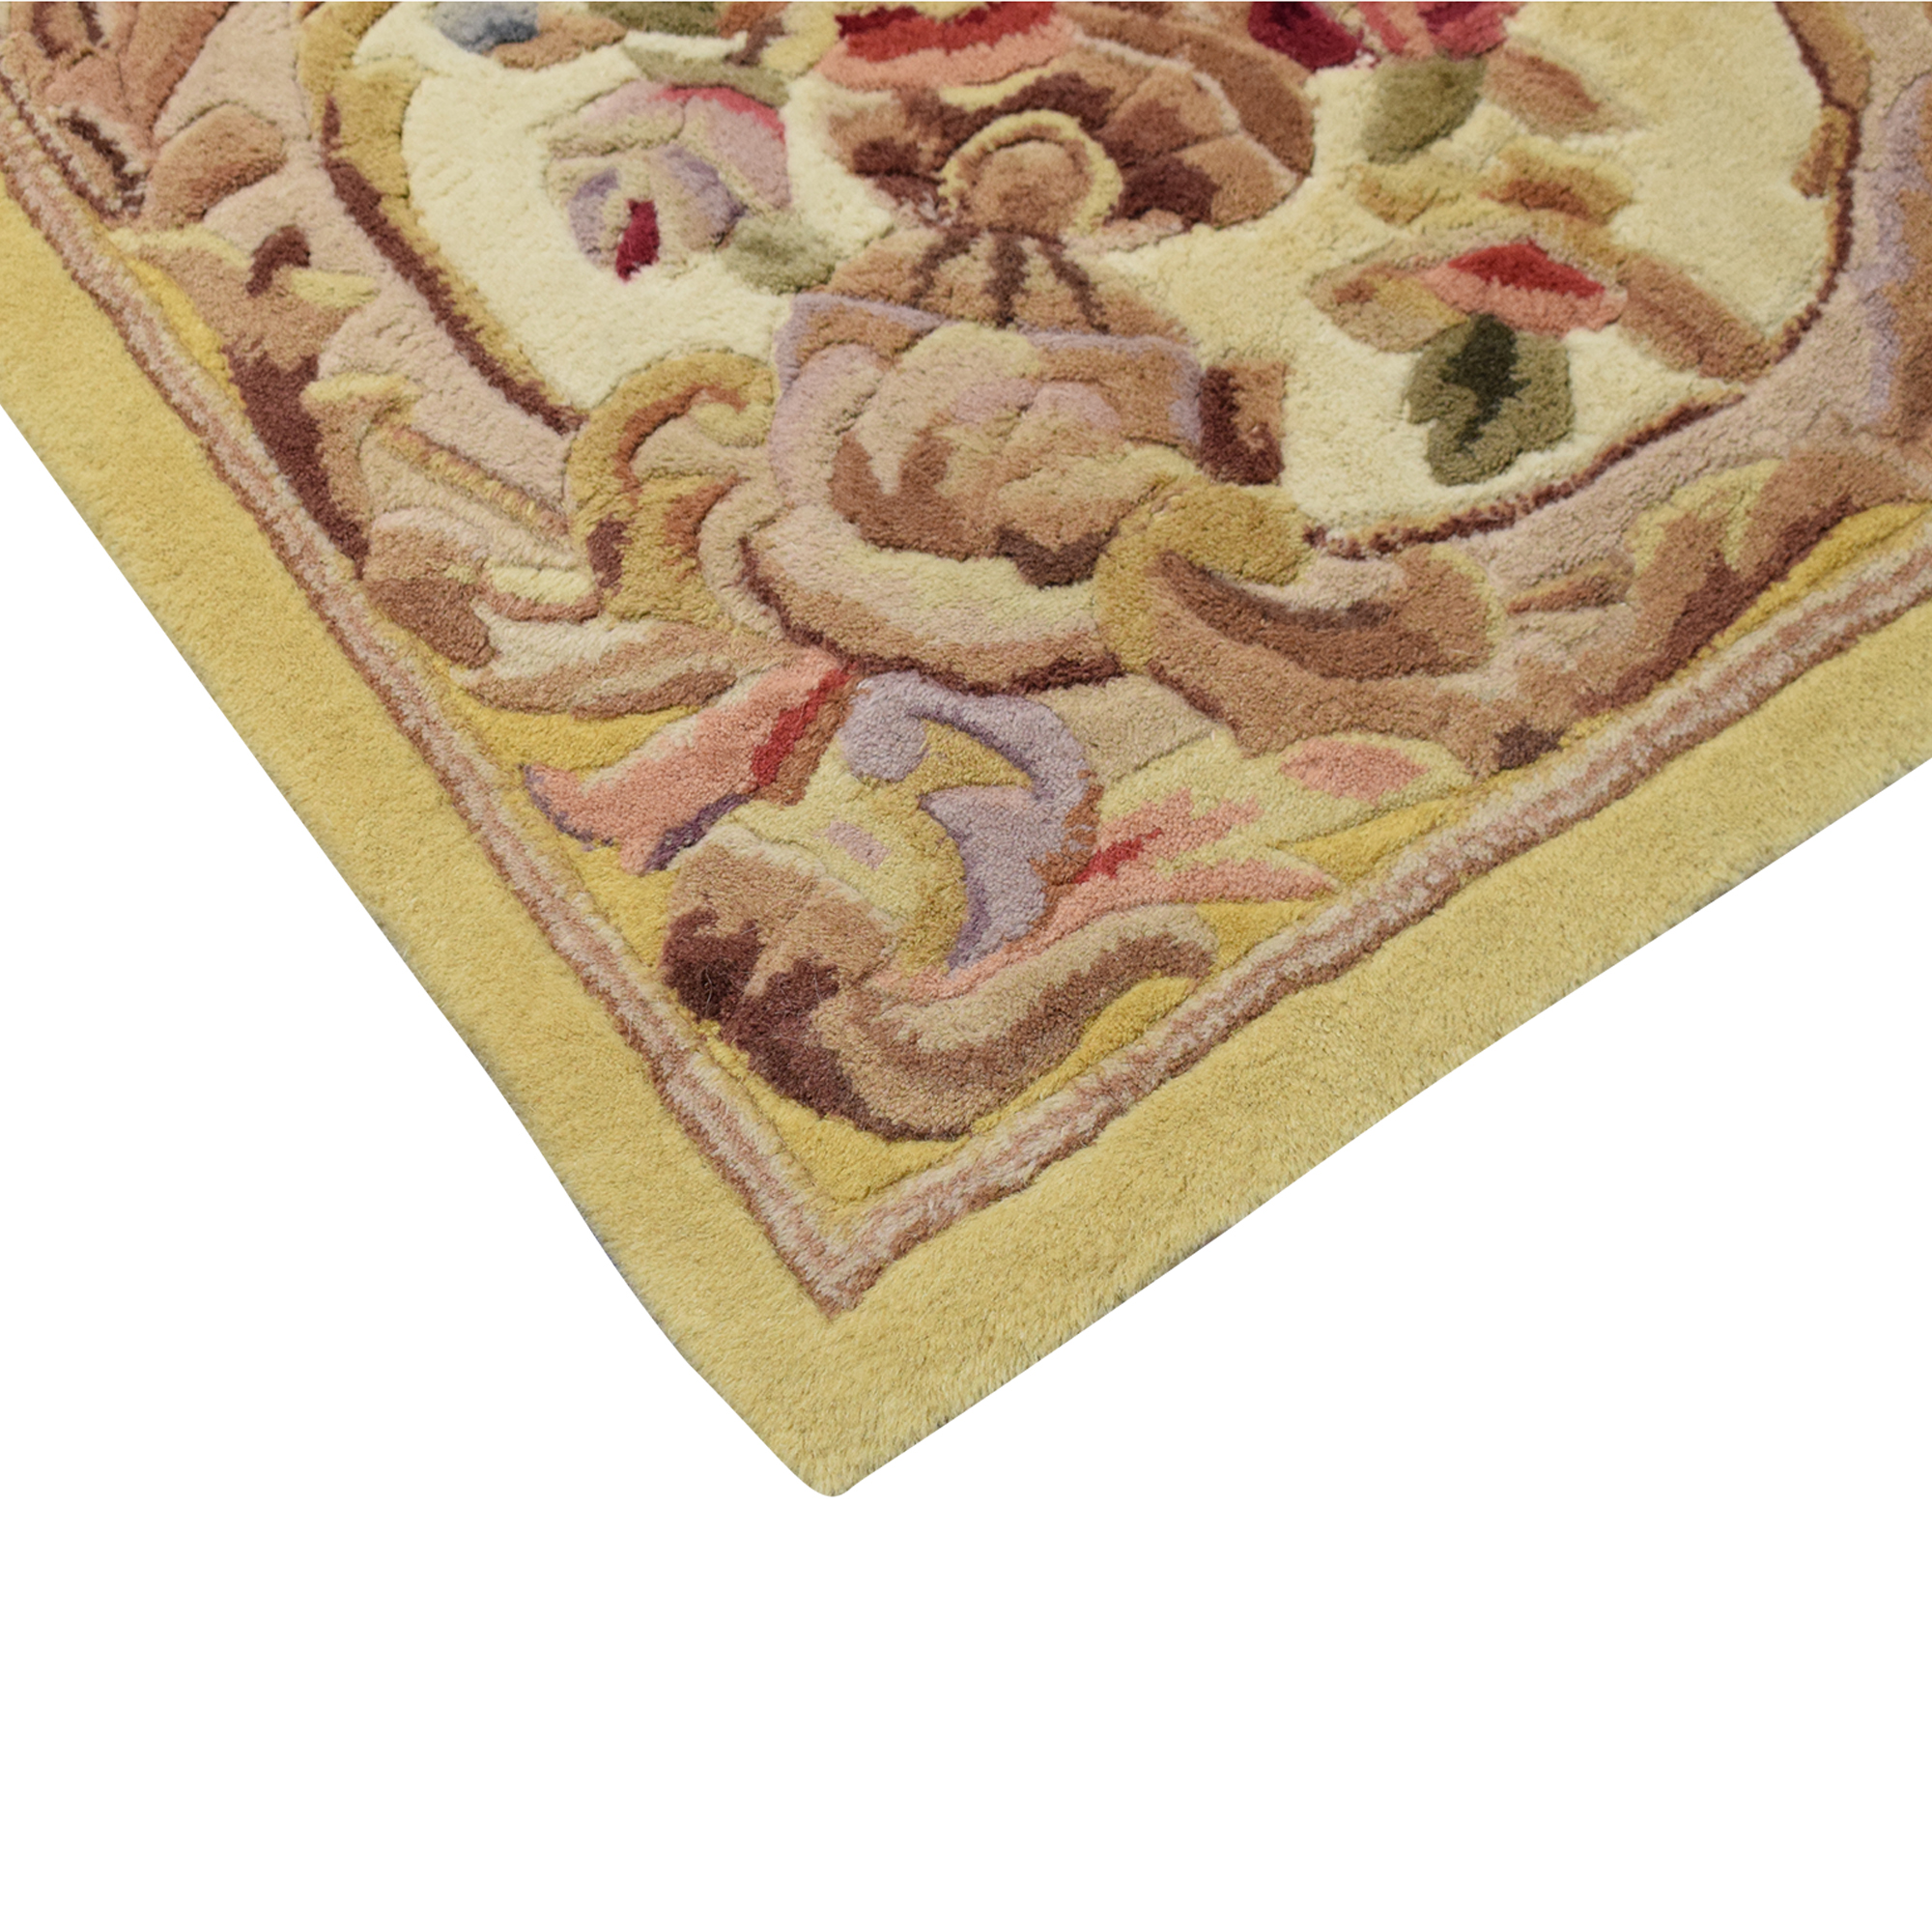 Royal Palace Royal Palace Savonnerie Wool Area Rug on sale